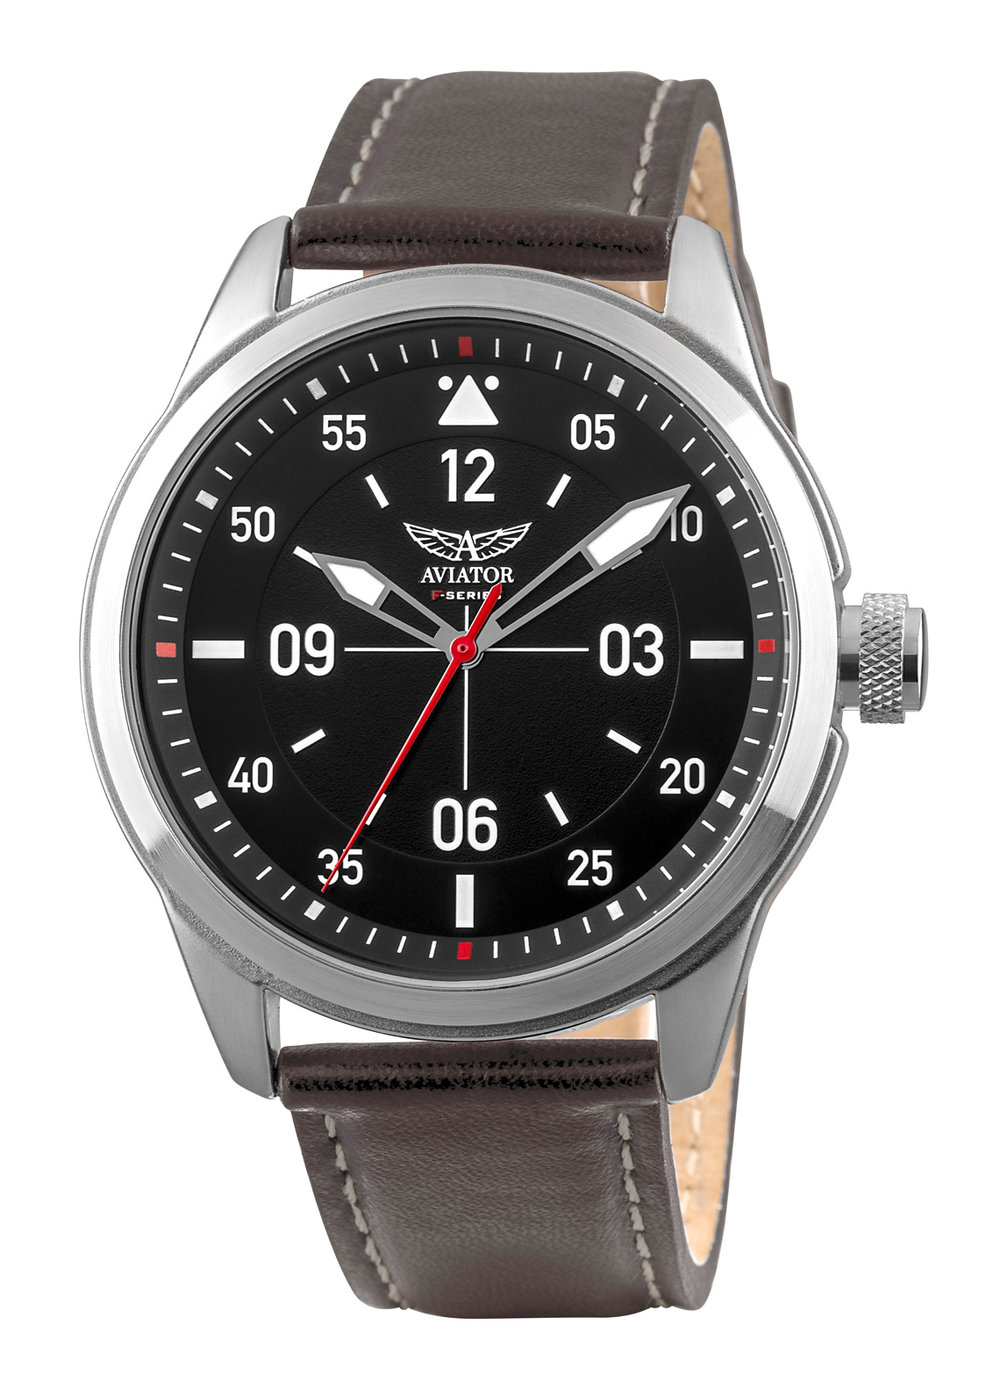 The rotating inner bezel enables the reading of the time in 24 cities around the world. The highly detailed black dial has a 2-step chronograph , 12/24 hour sub-dial, calendar and luminous hands. The 45mm case is solid stainless steel and finished in IP black plating and fitted with a high quality integrated leather strap. Water resistant to 10ATM. 24-month international warranty.